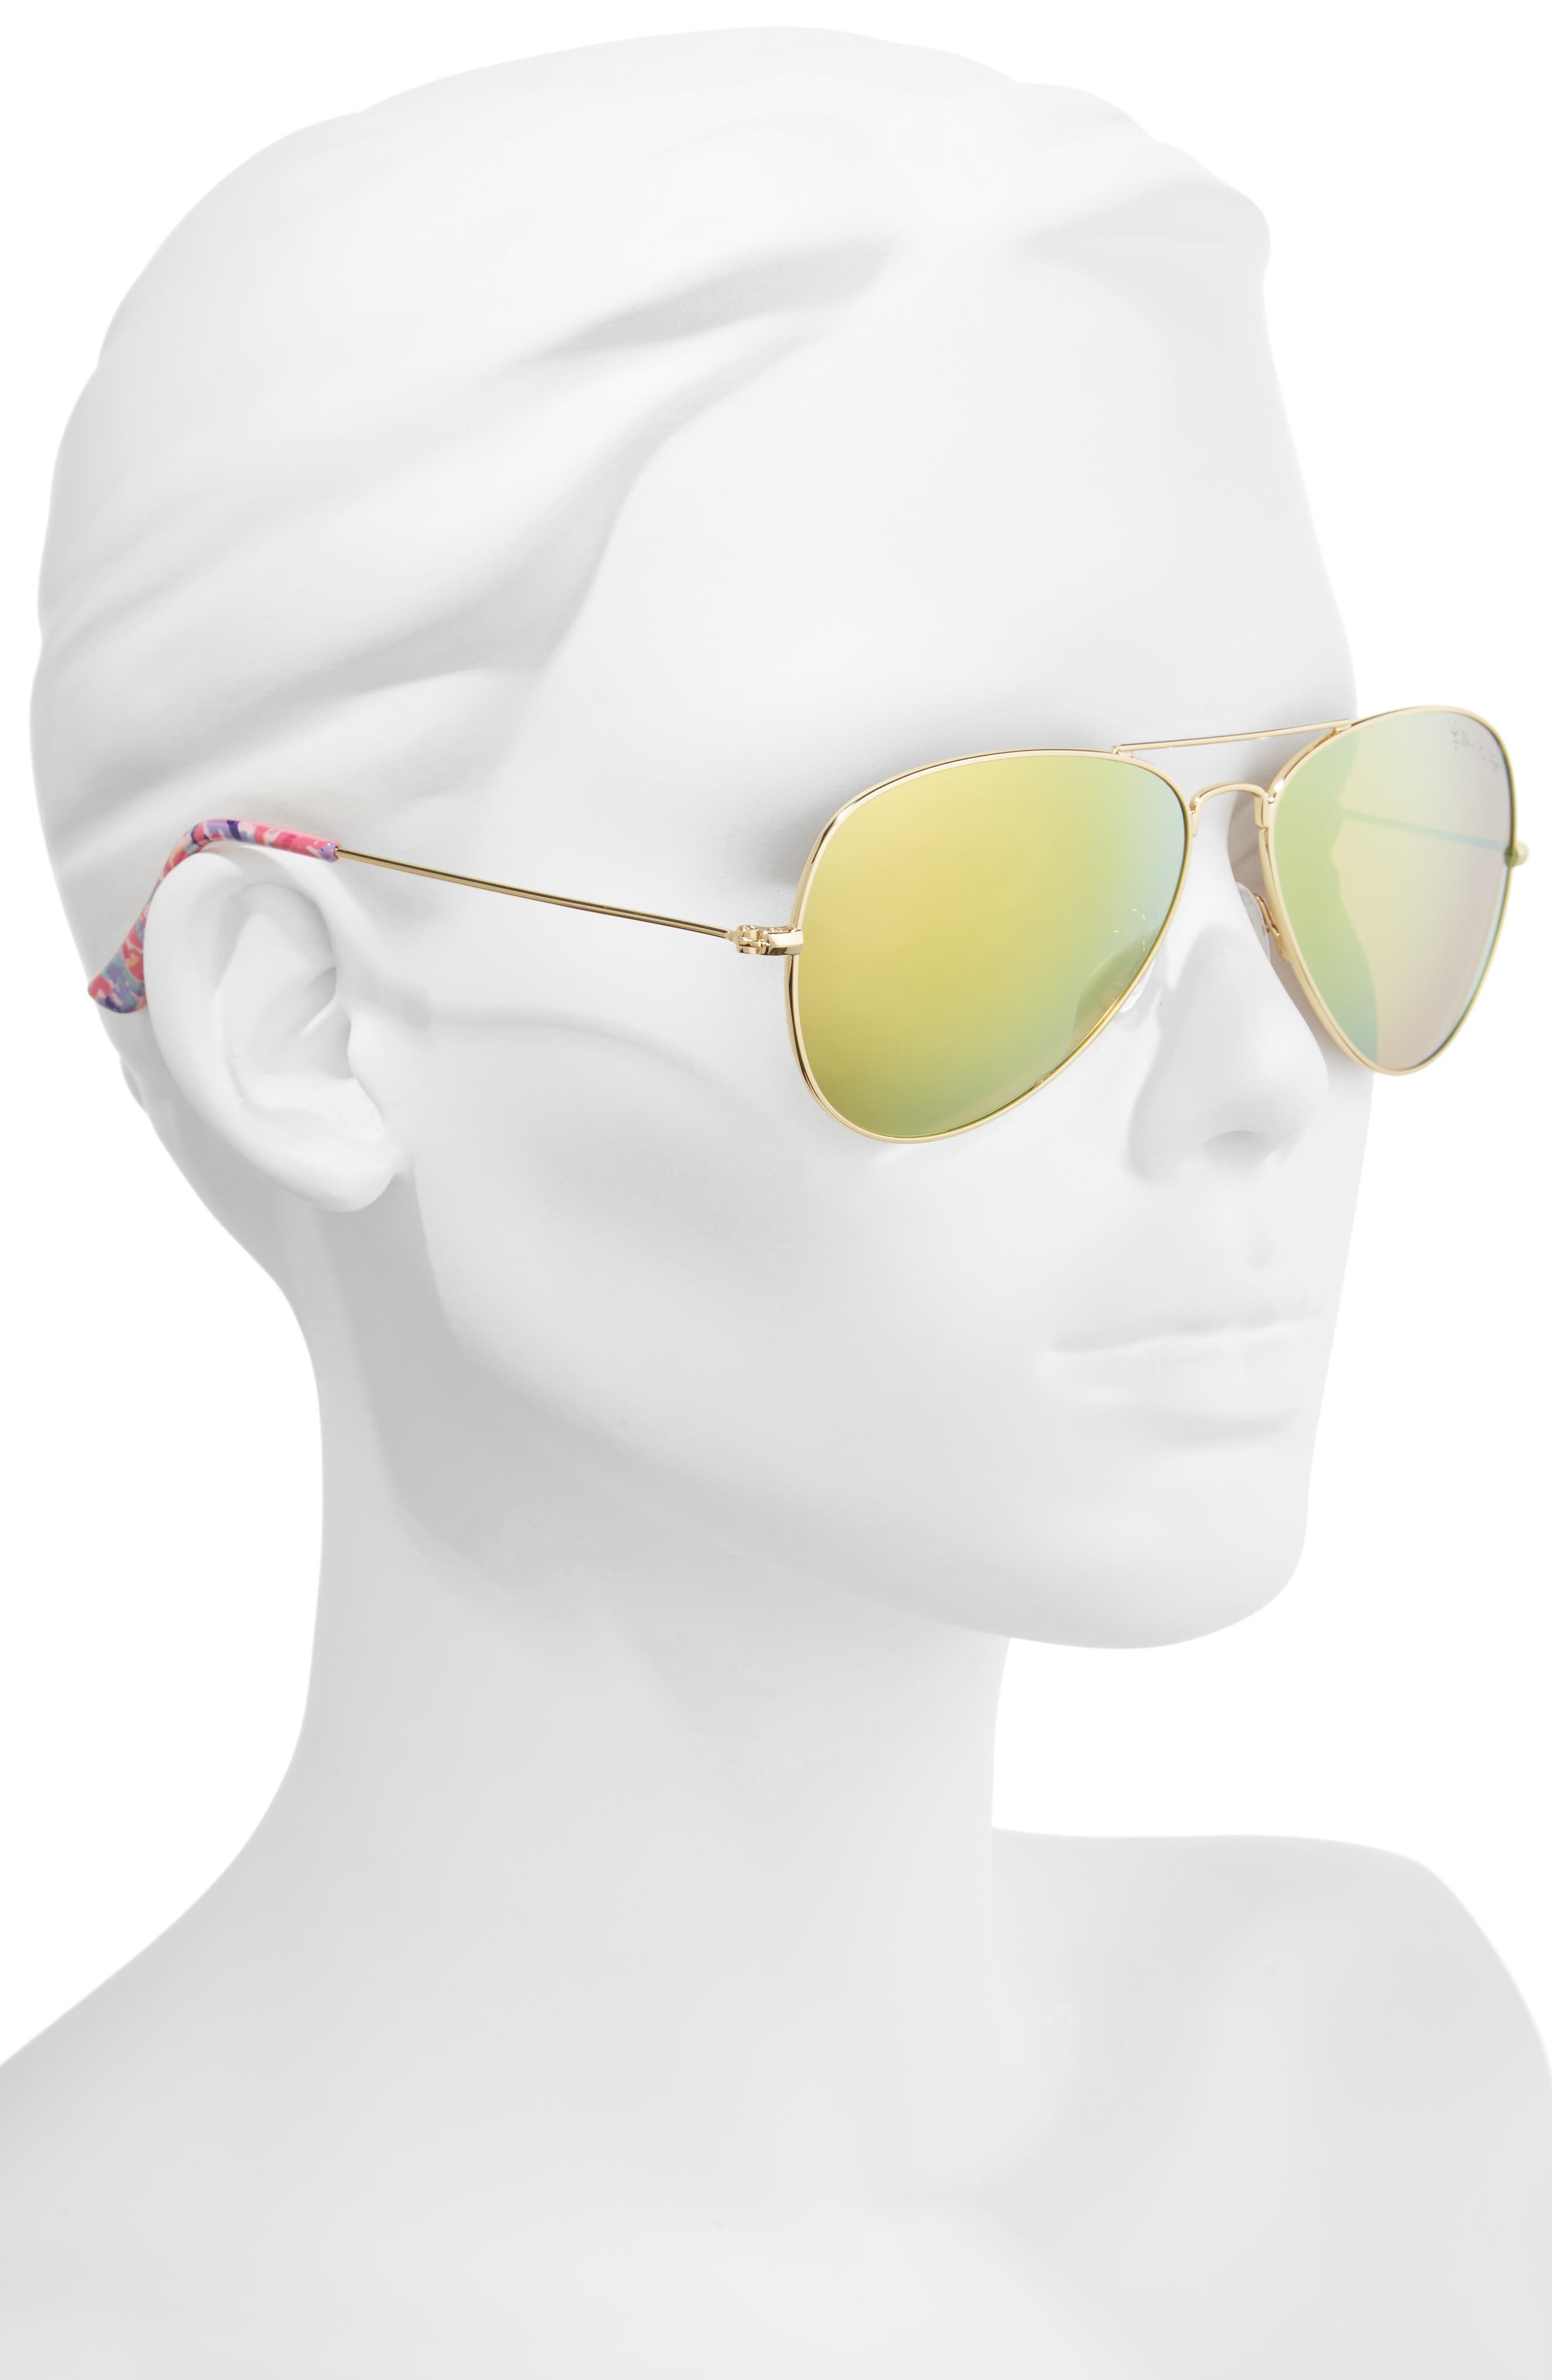 Lexy 59mm Polarized Aviator Sunglasses,                             Alternate thumbnail 2, color,                             Pink